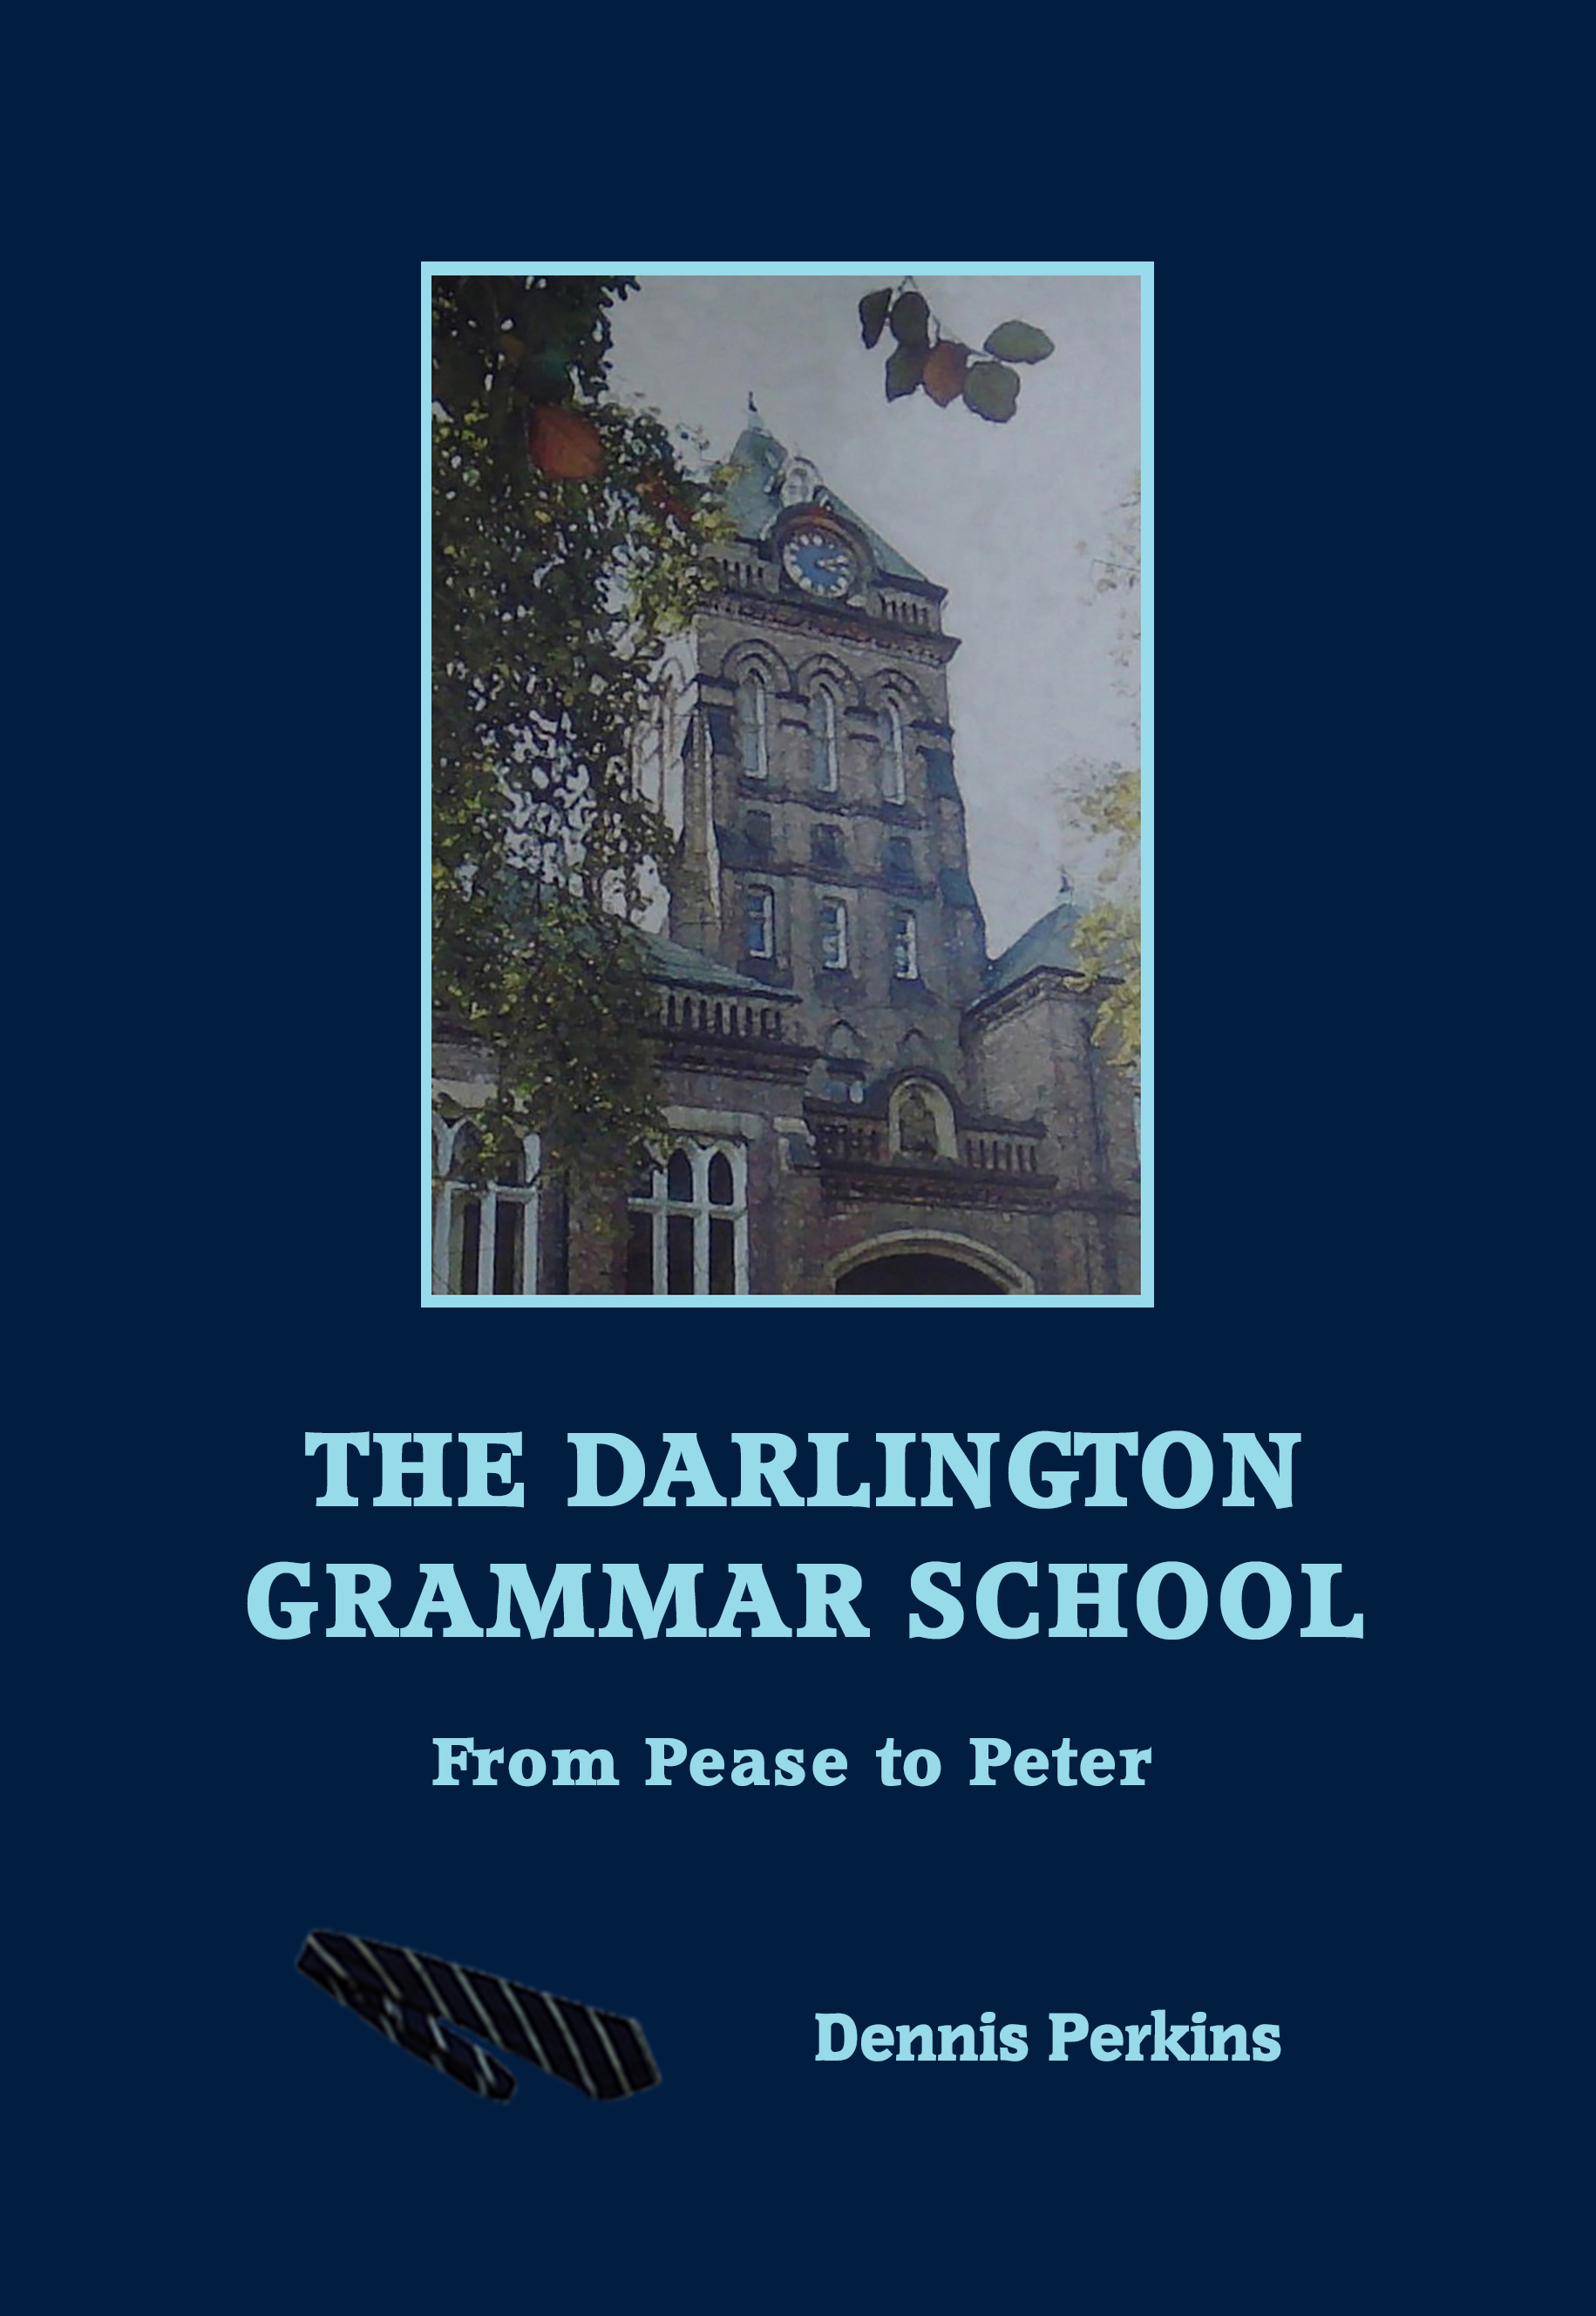 Darlington Grammar School